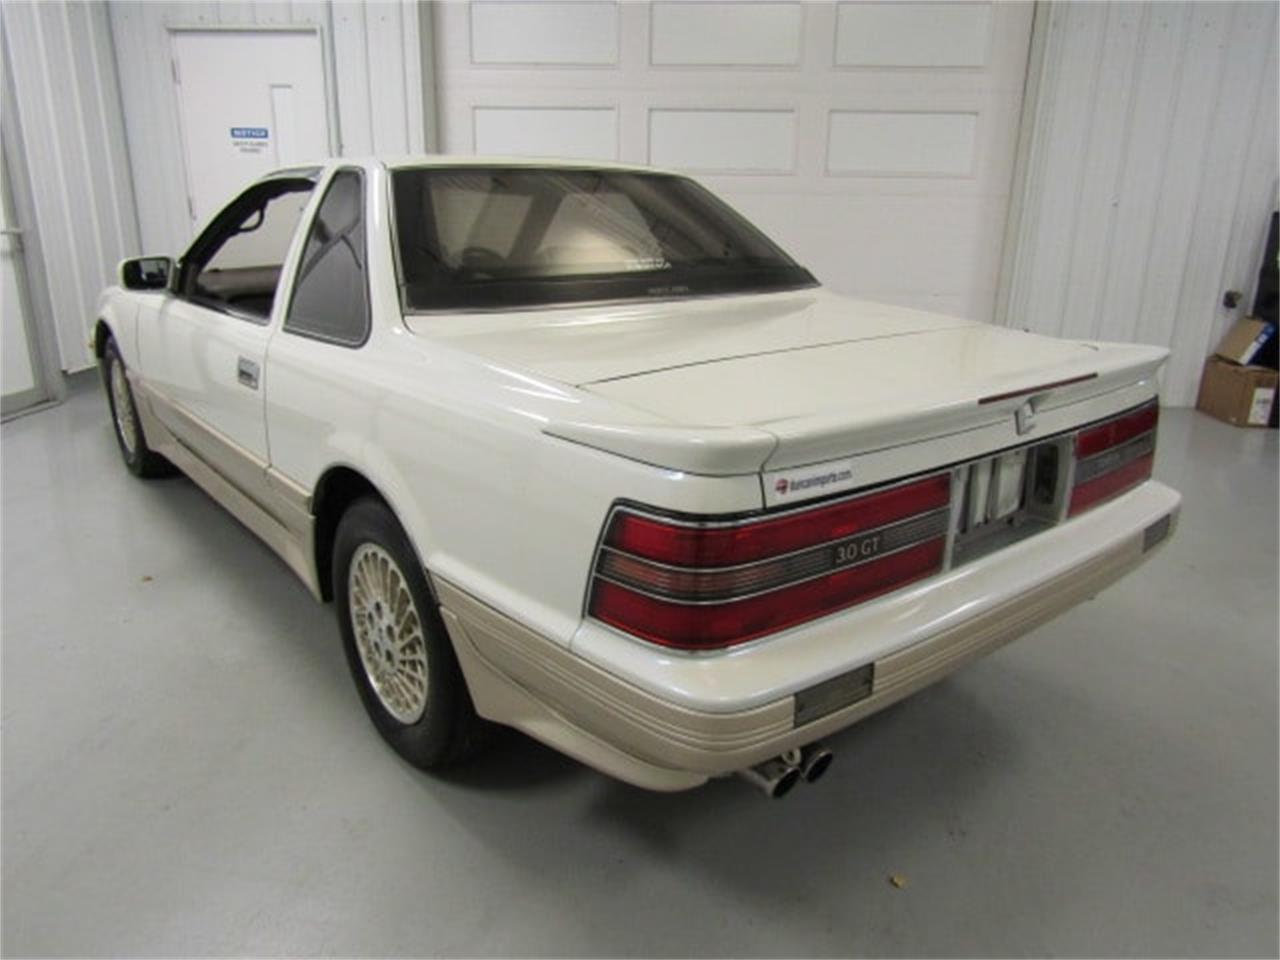 Large Picture of 1989 Soarer - $12,900.00 Offered by Duncan Imports & Classic Cars - LN7J